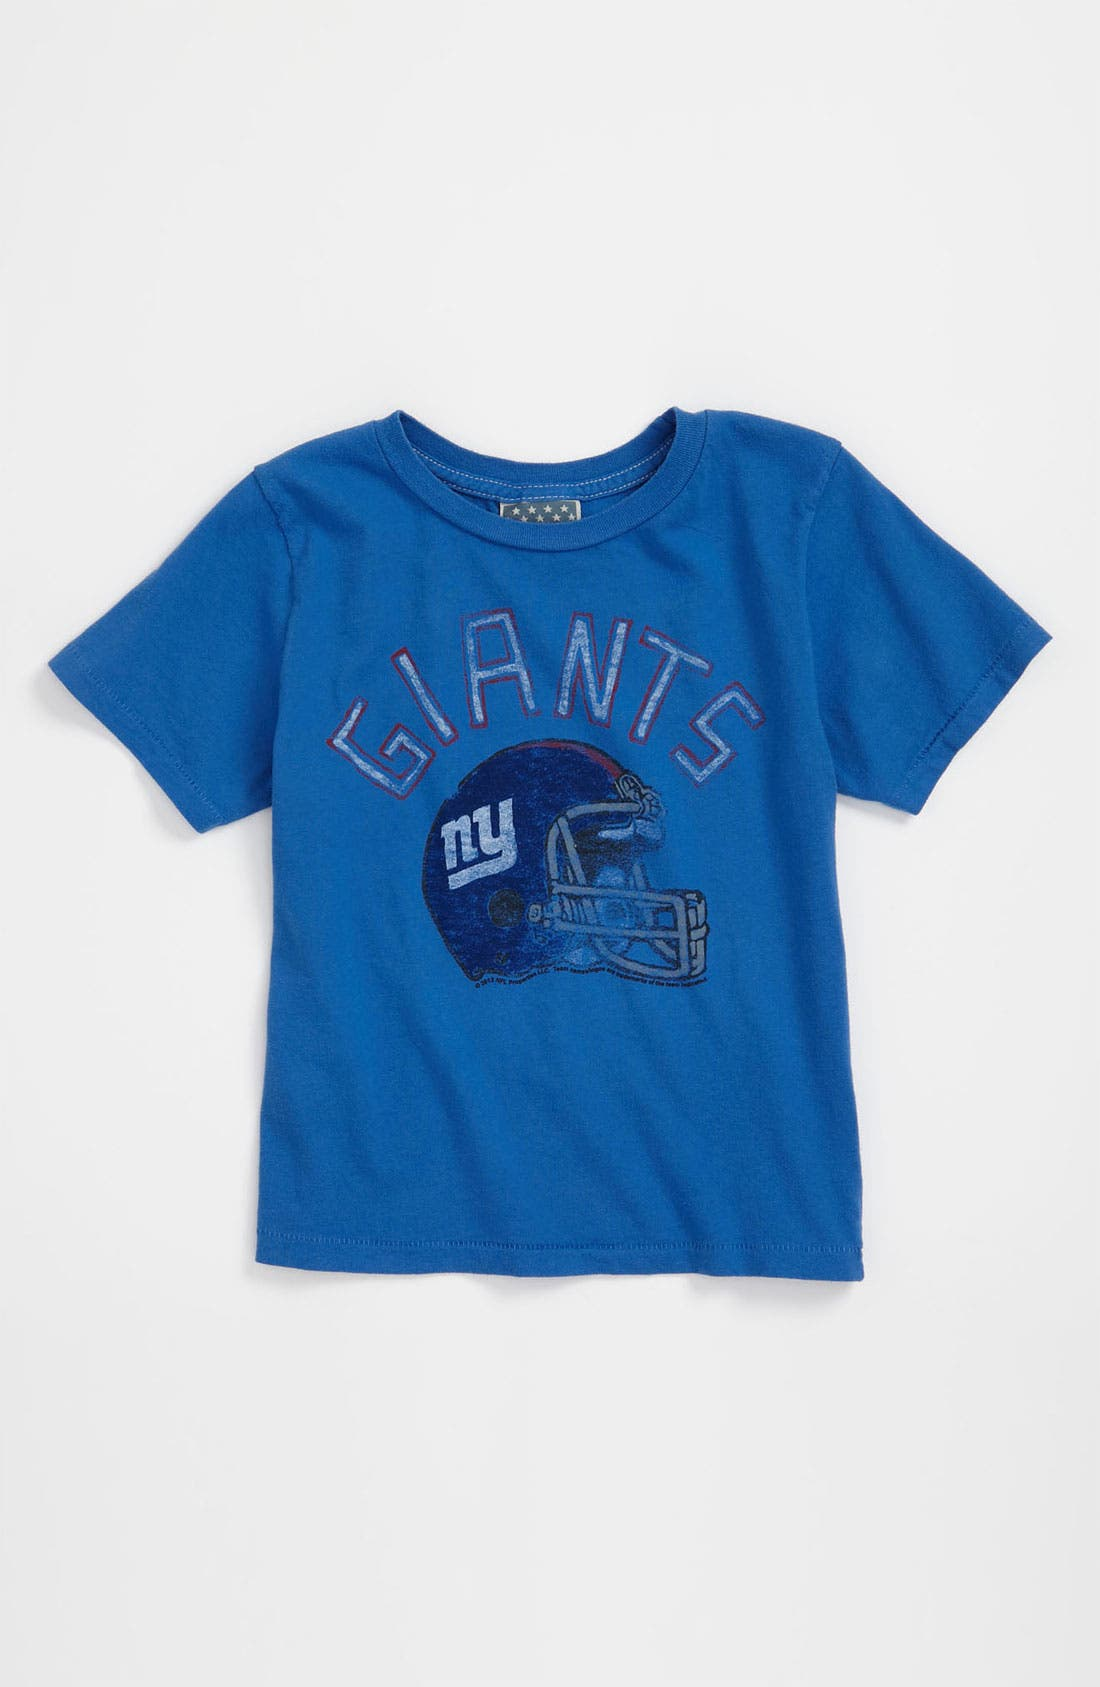 Main Image - Junk Food 'New York Giants' T-Shirt (Infant)